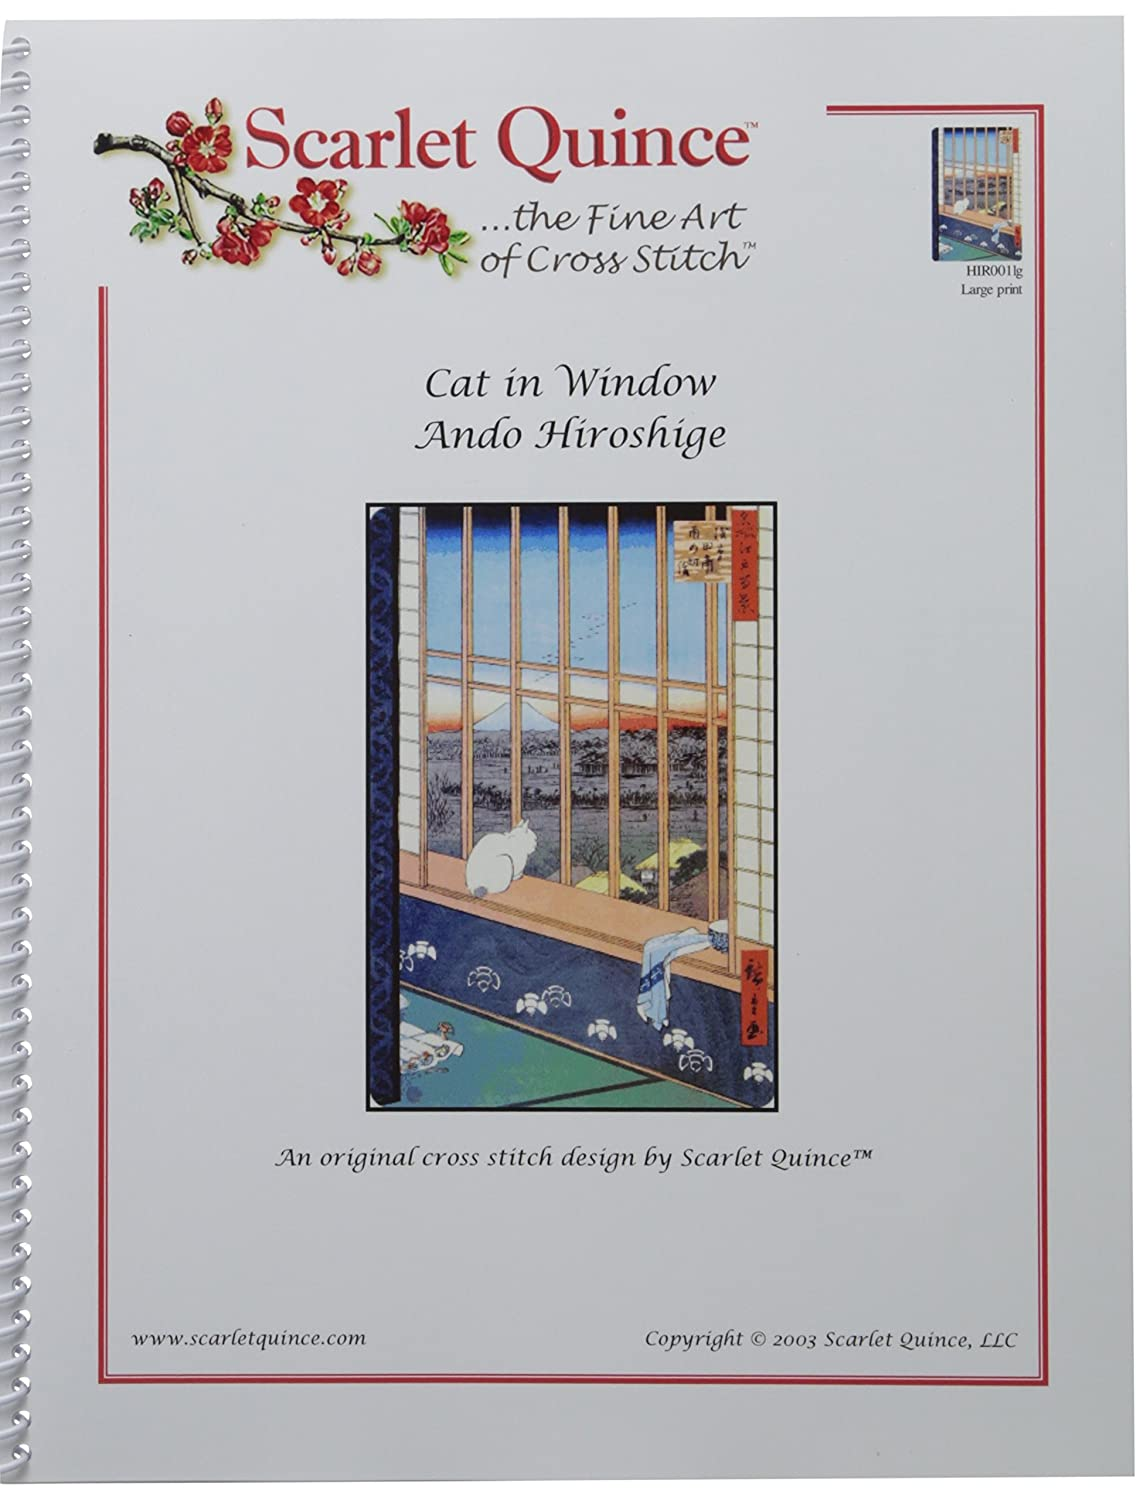 Amazon scarlet quince hir001 cat in window by ando hiroshige amazon scarlet quince hir001 cat in window by ando hiroshige counted cross stitch chart regular size symbols arts crafts sewing biocorpaavc Image collections